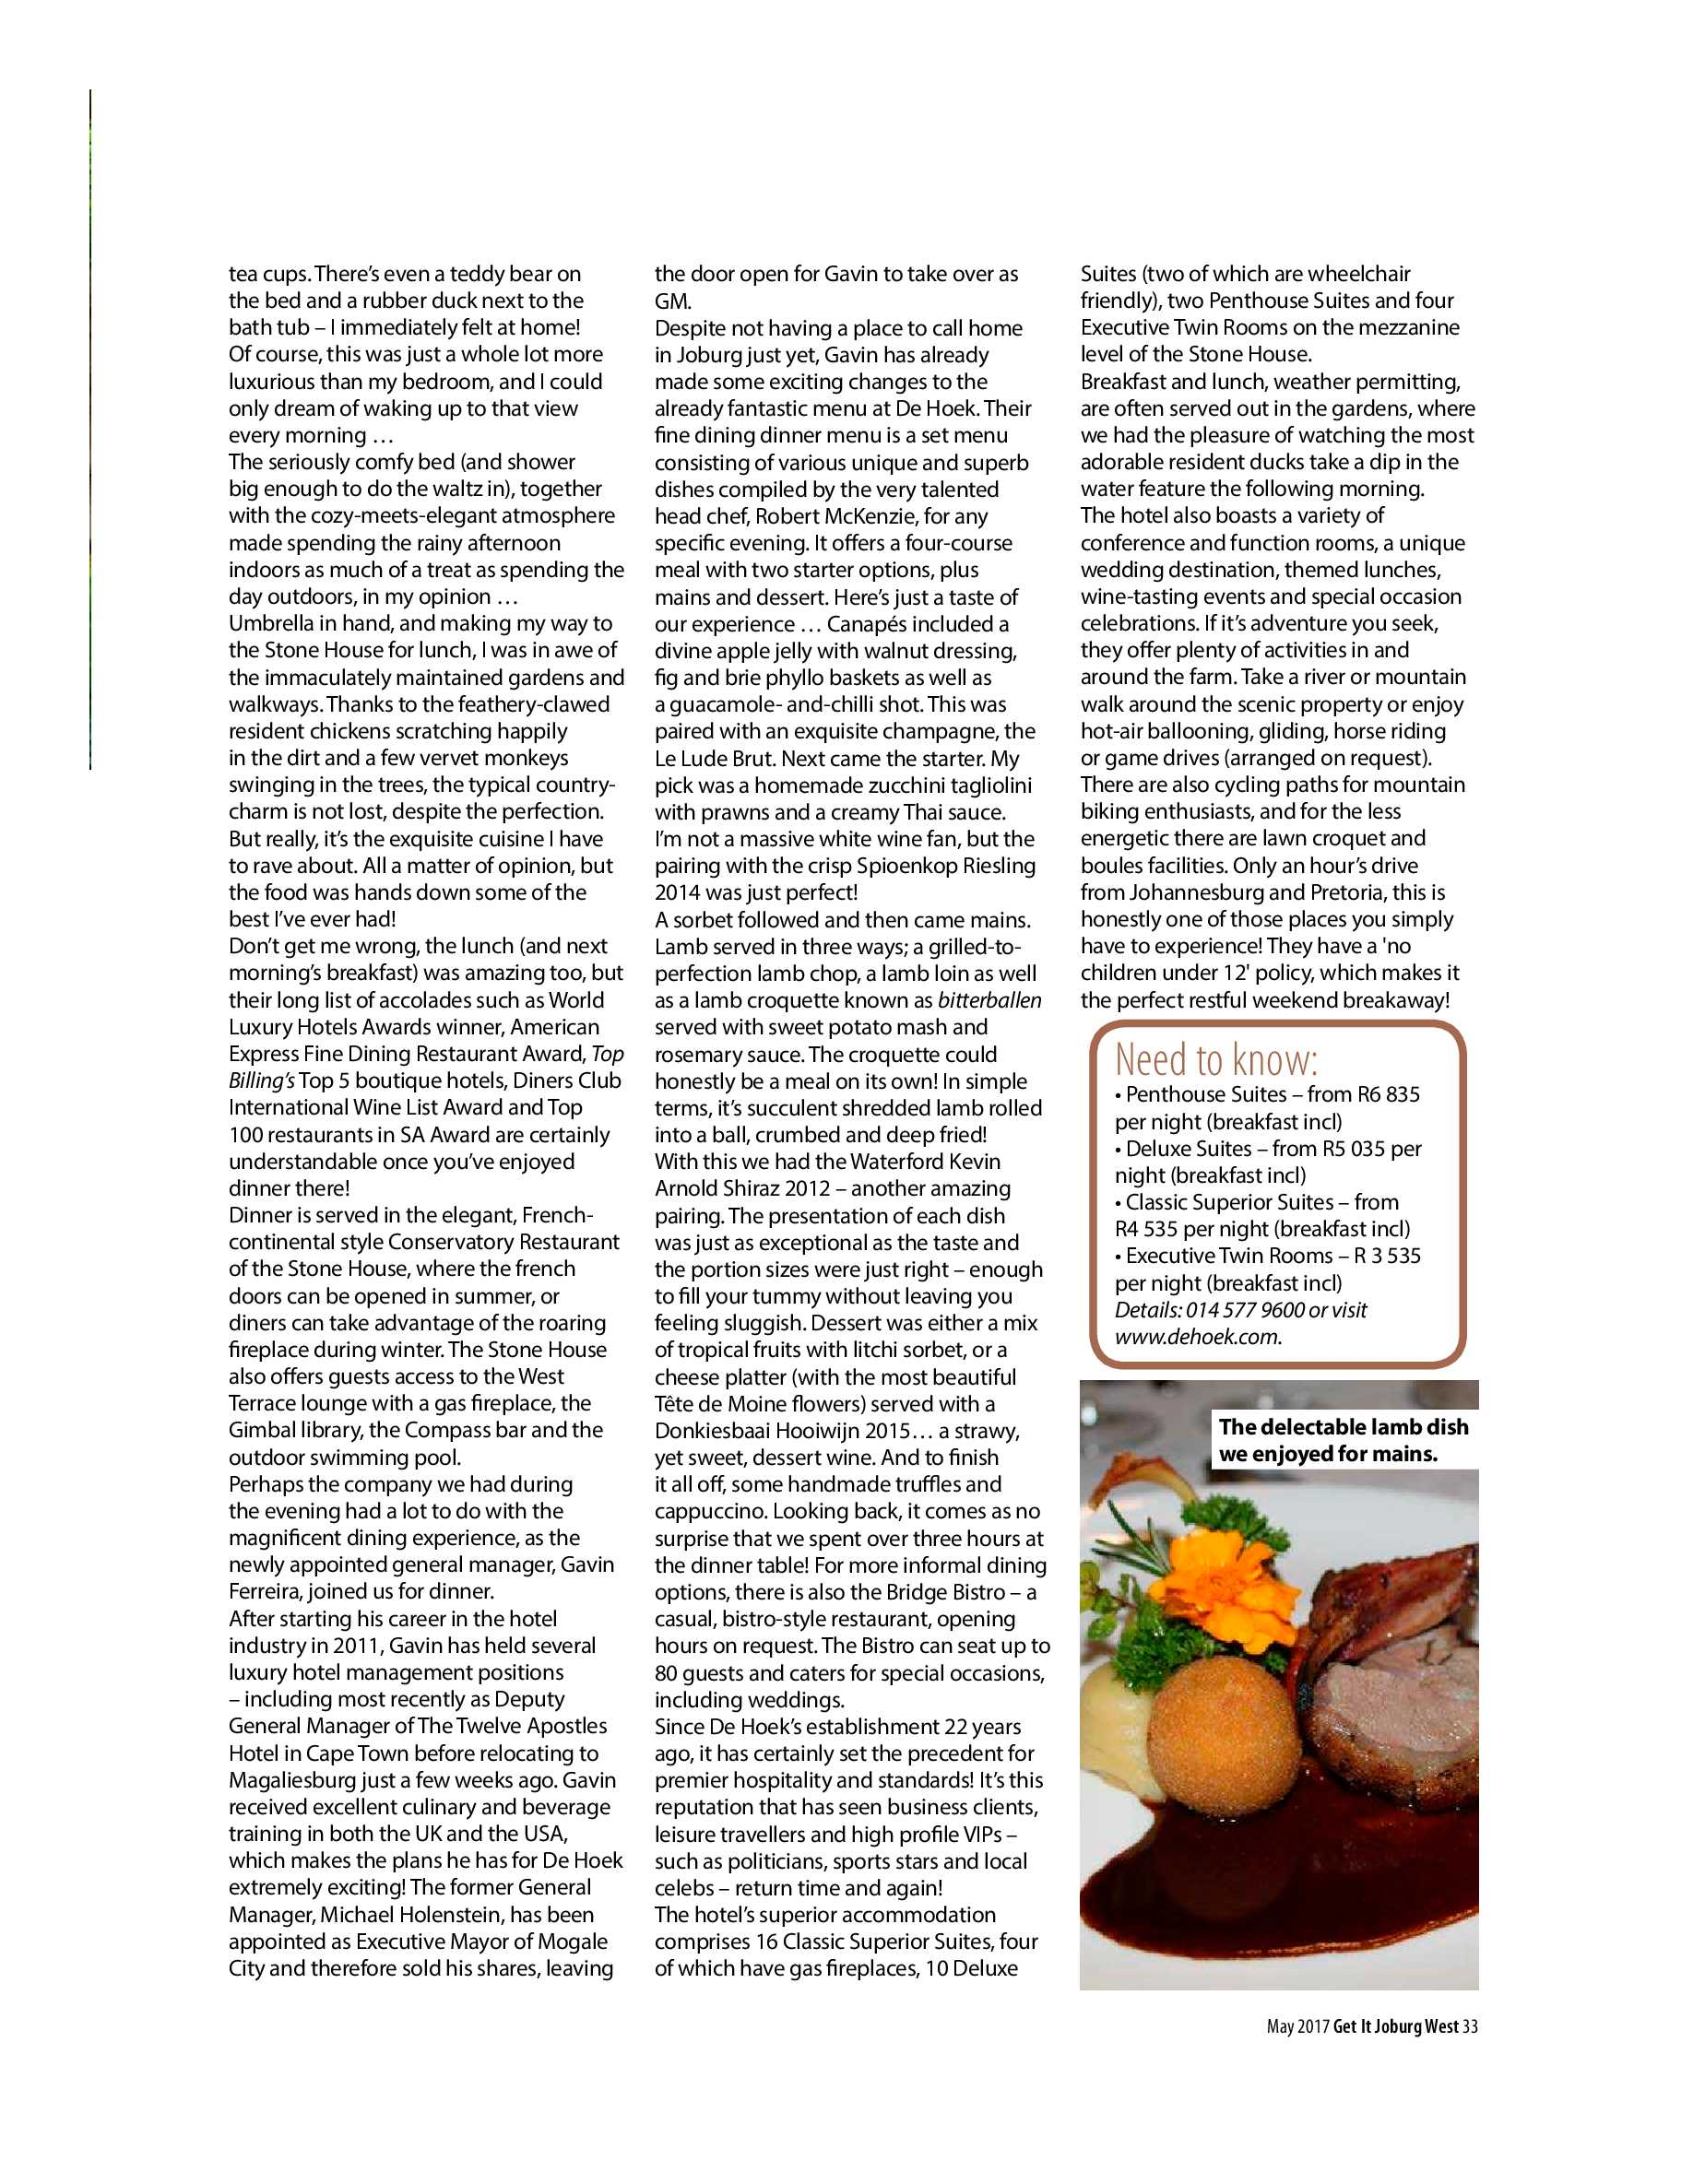 get-joburg-west-may-2017-epapers-page-33